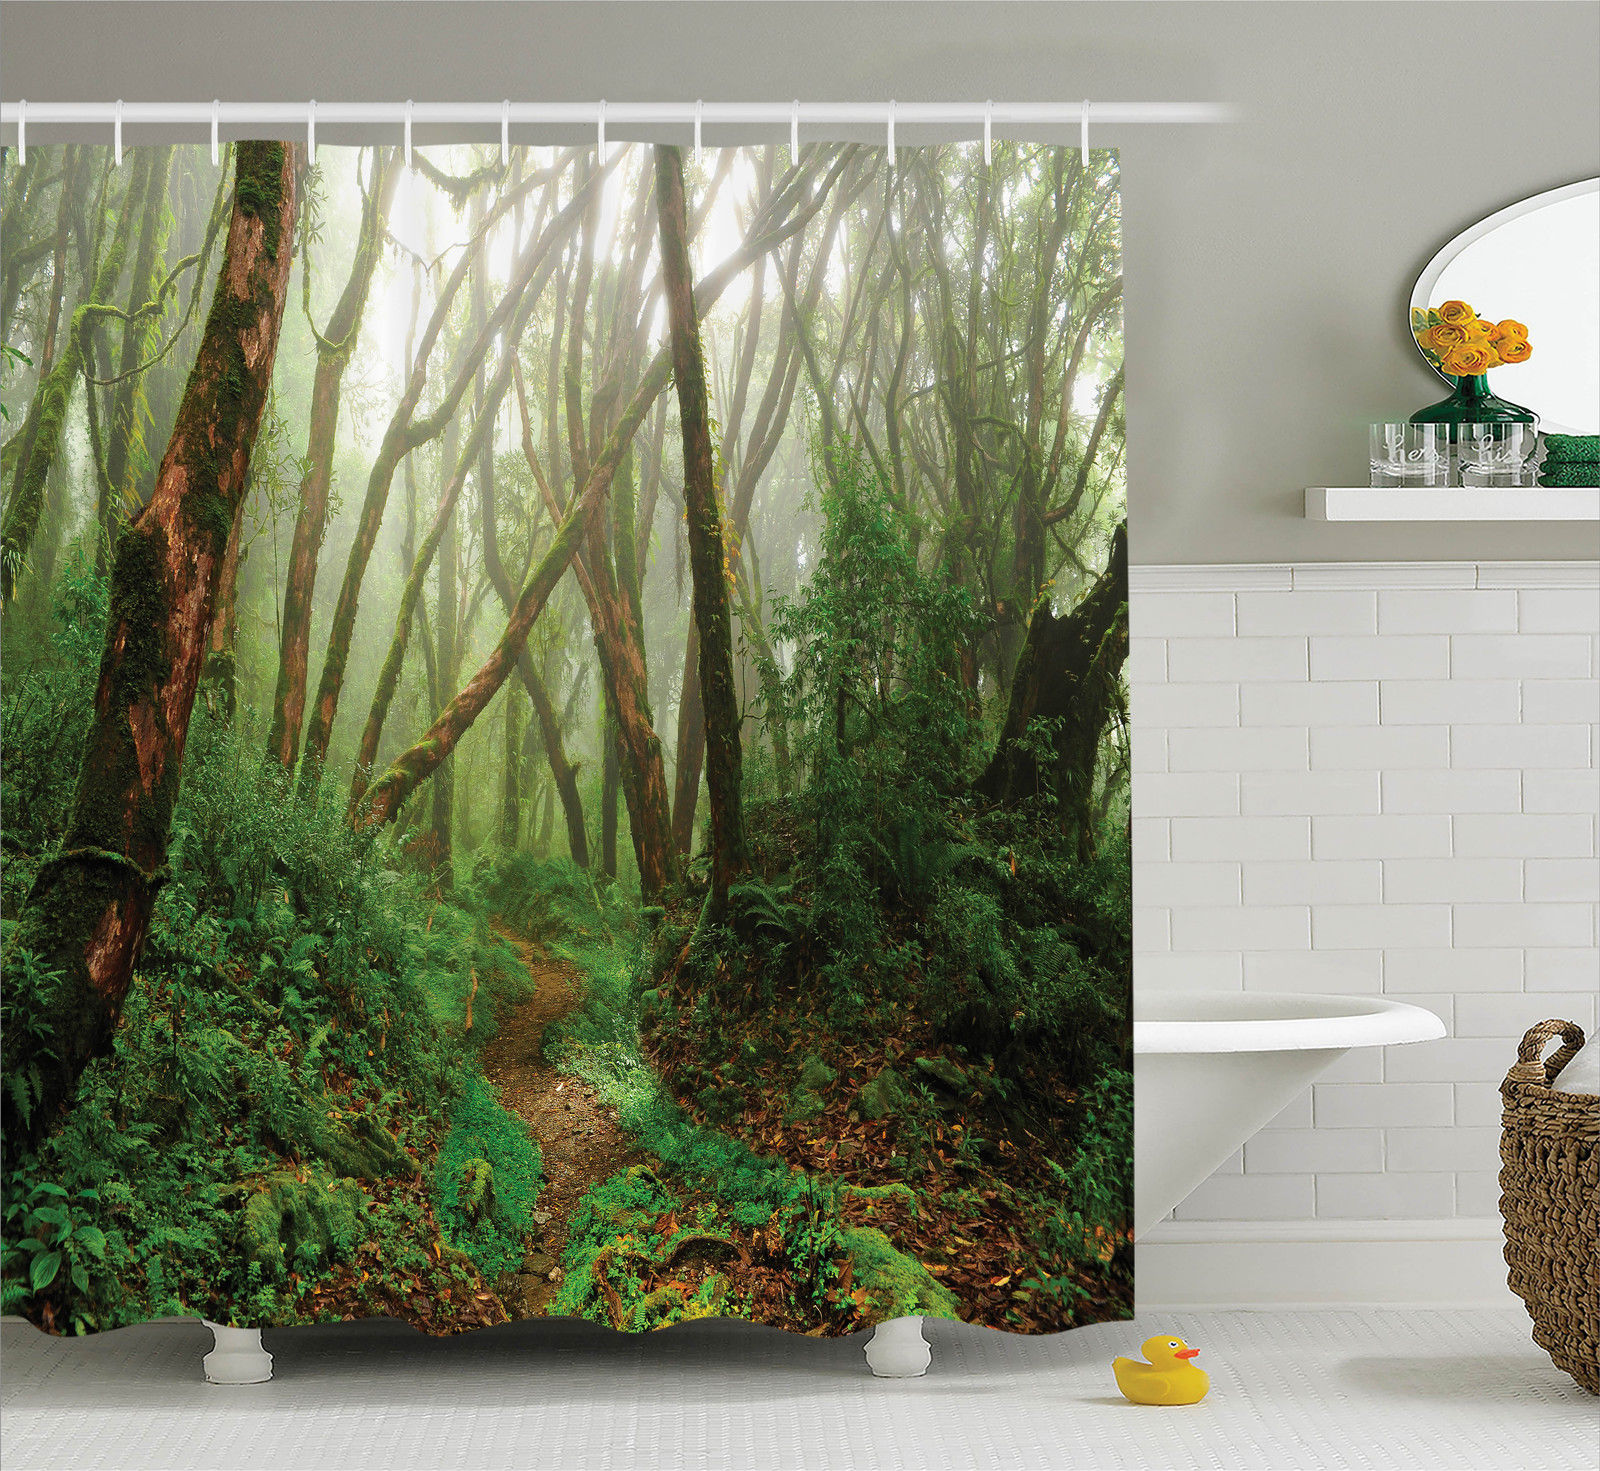 Farm House Decor Shower Curtain Set, Spooky Tropical Exotic Fog Jungle In Rainforest In Nepal Asian Climate Picture Print, Bathroom Accessories, 69W X 70L Inches, By Ambesonne